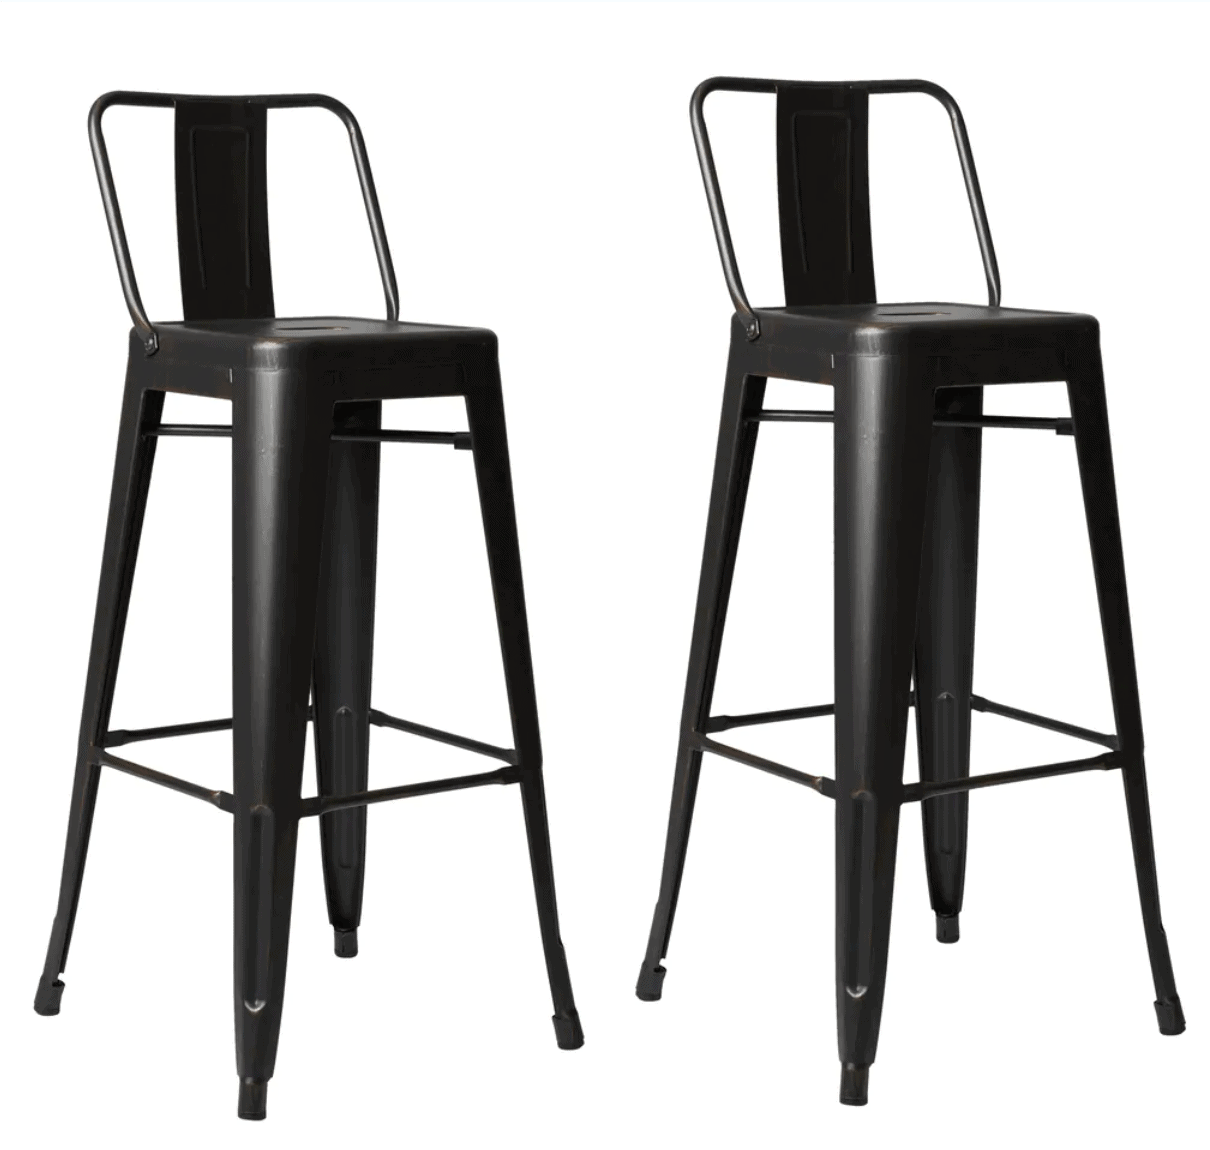 bar stools for sale near me